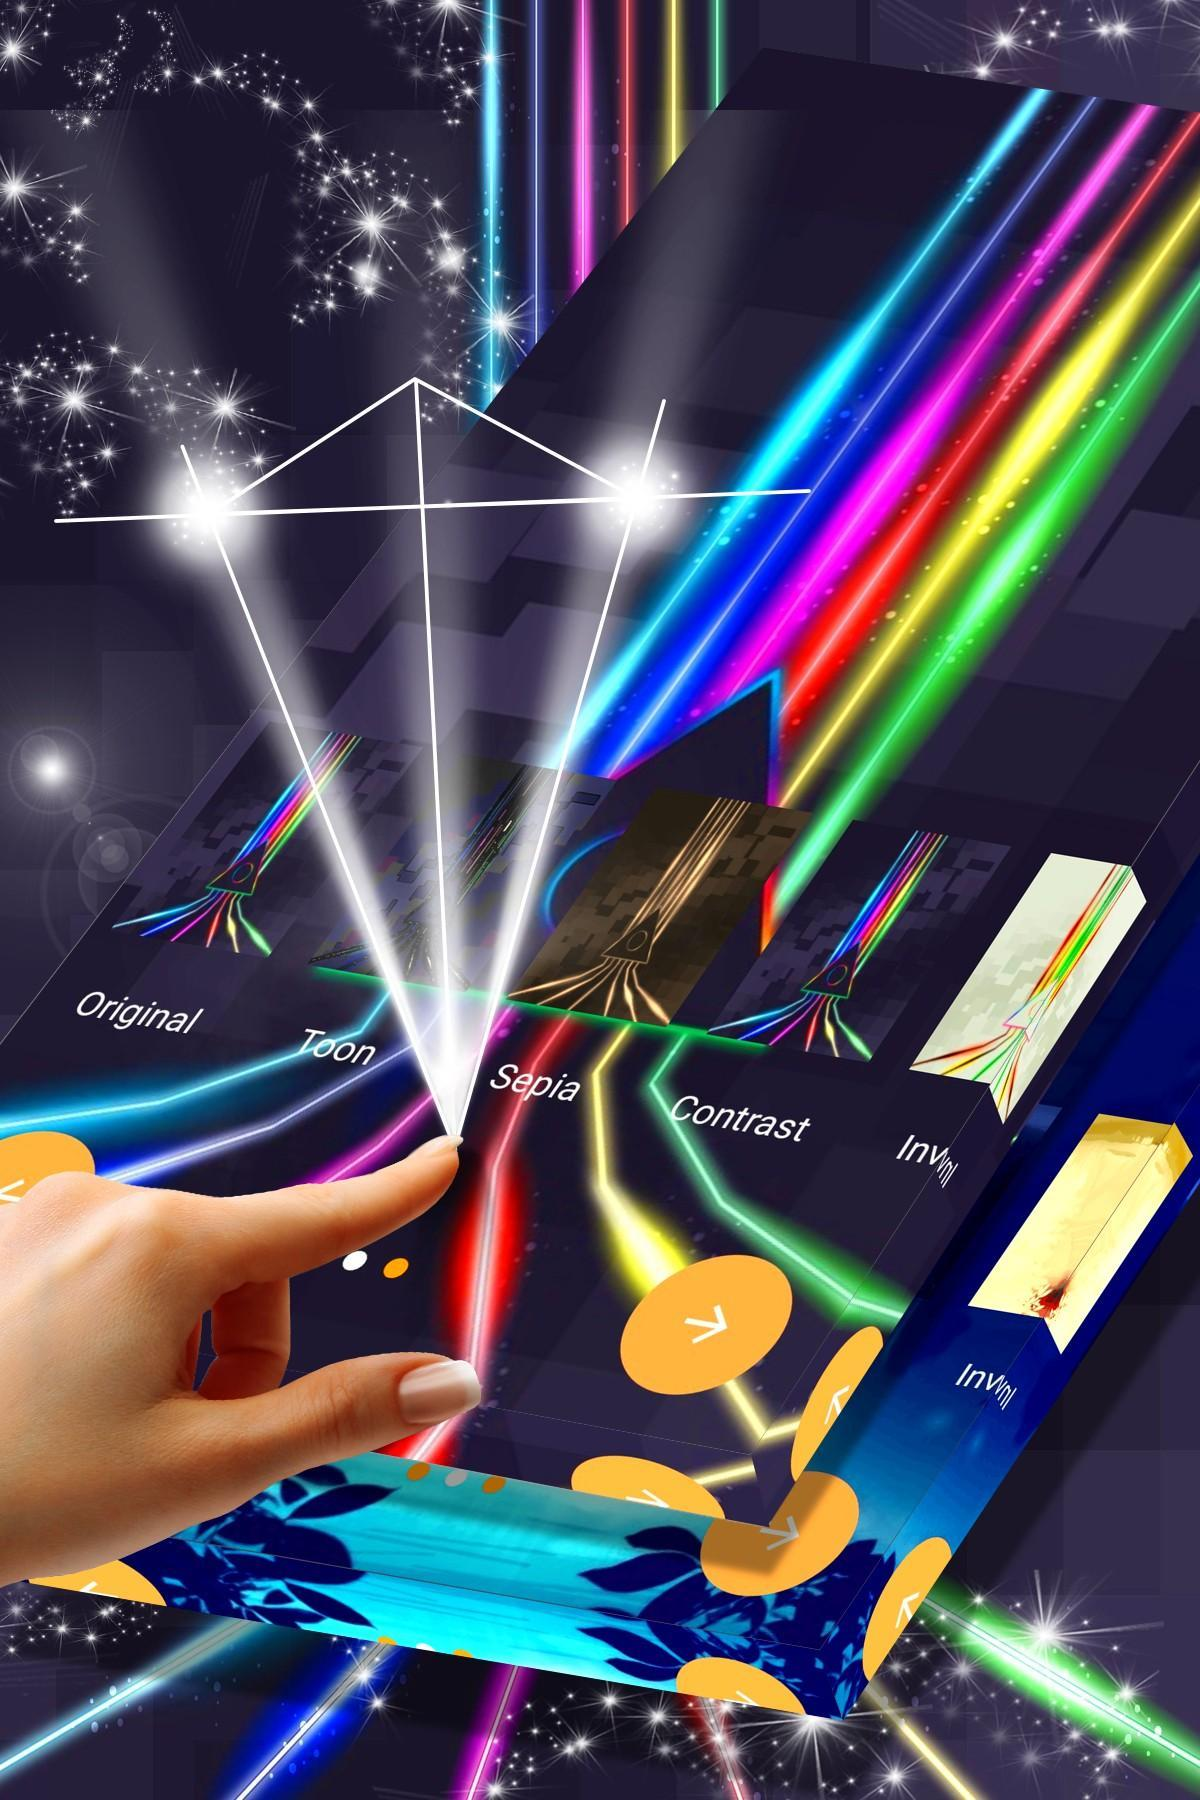 Neon Rainbow Wallpaper Pack For Android Apk Download